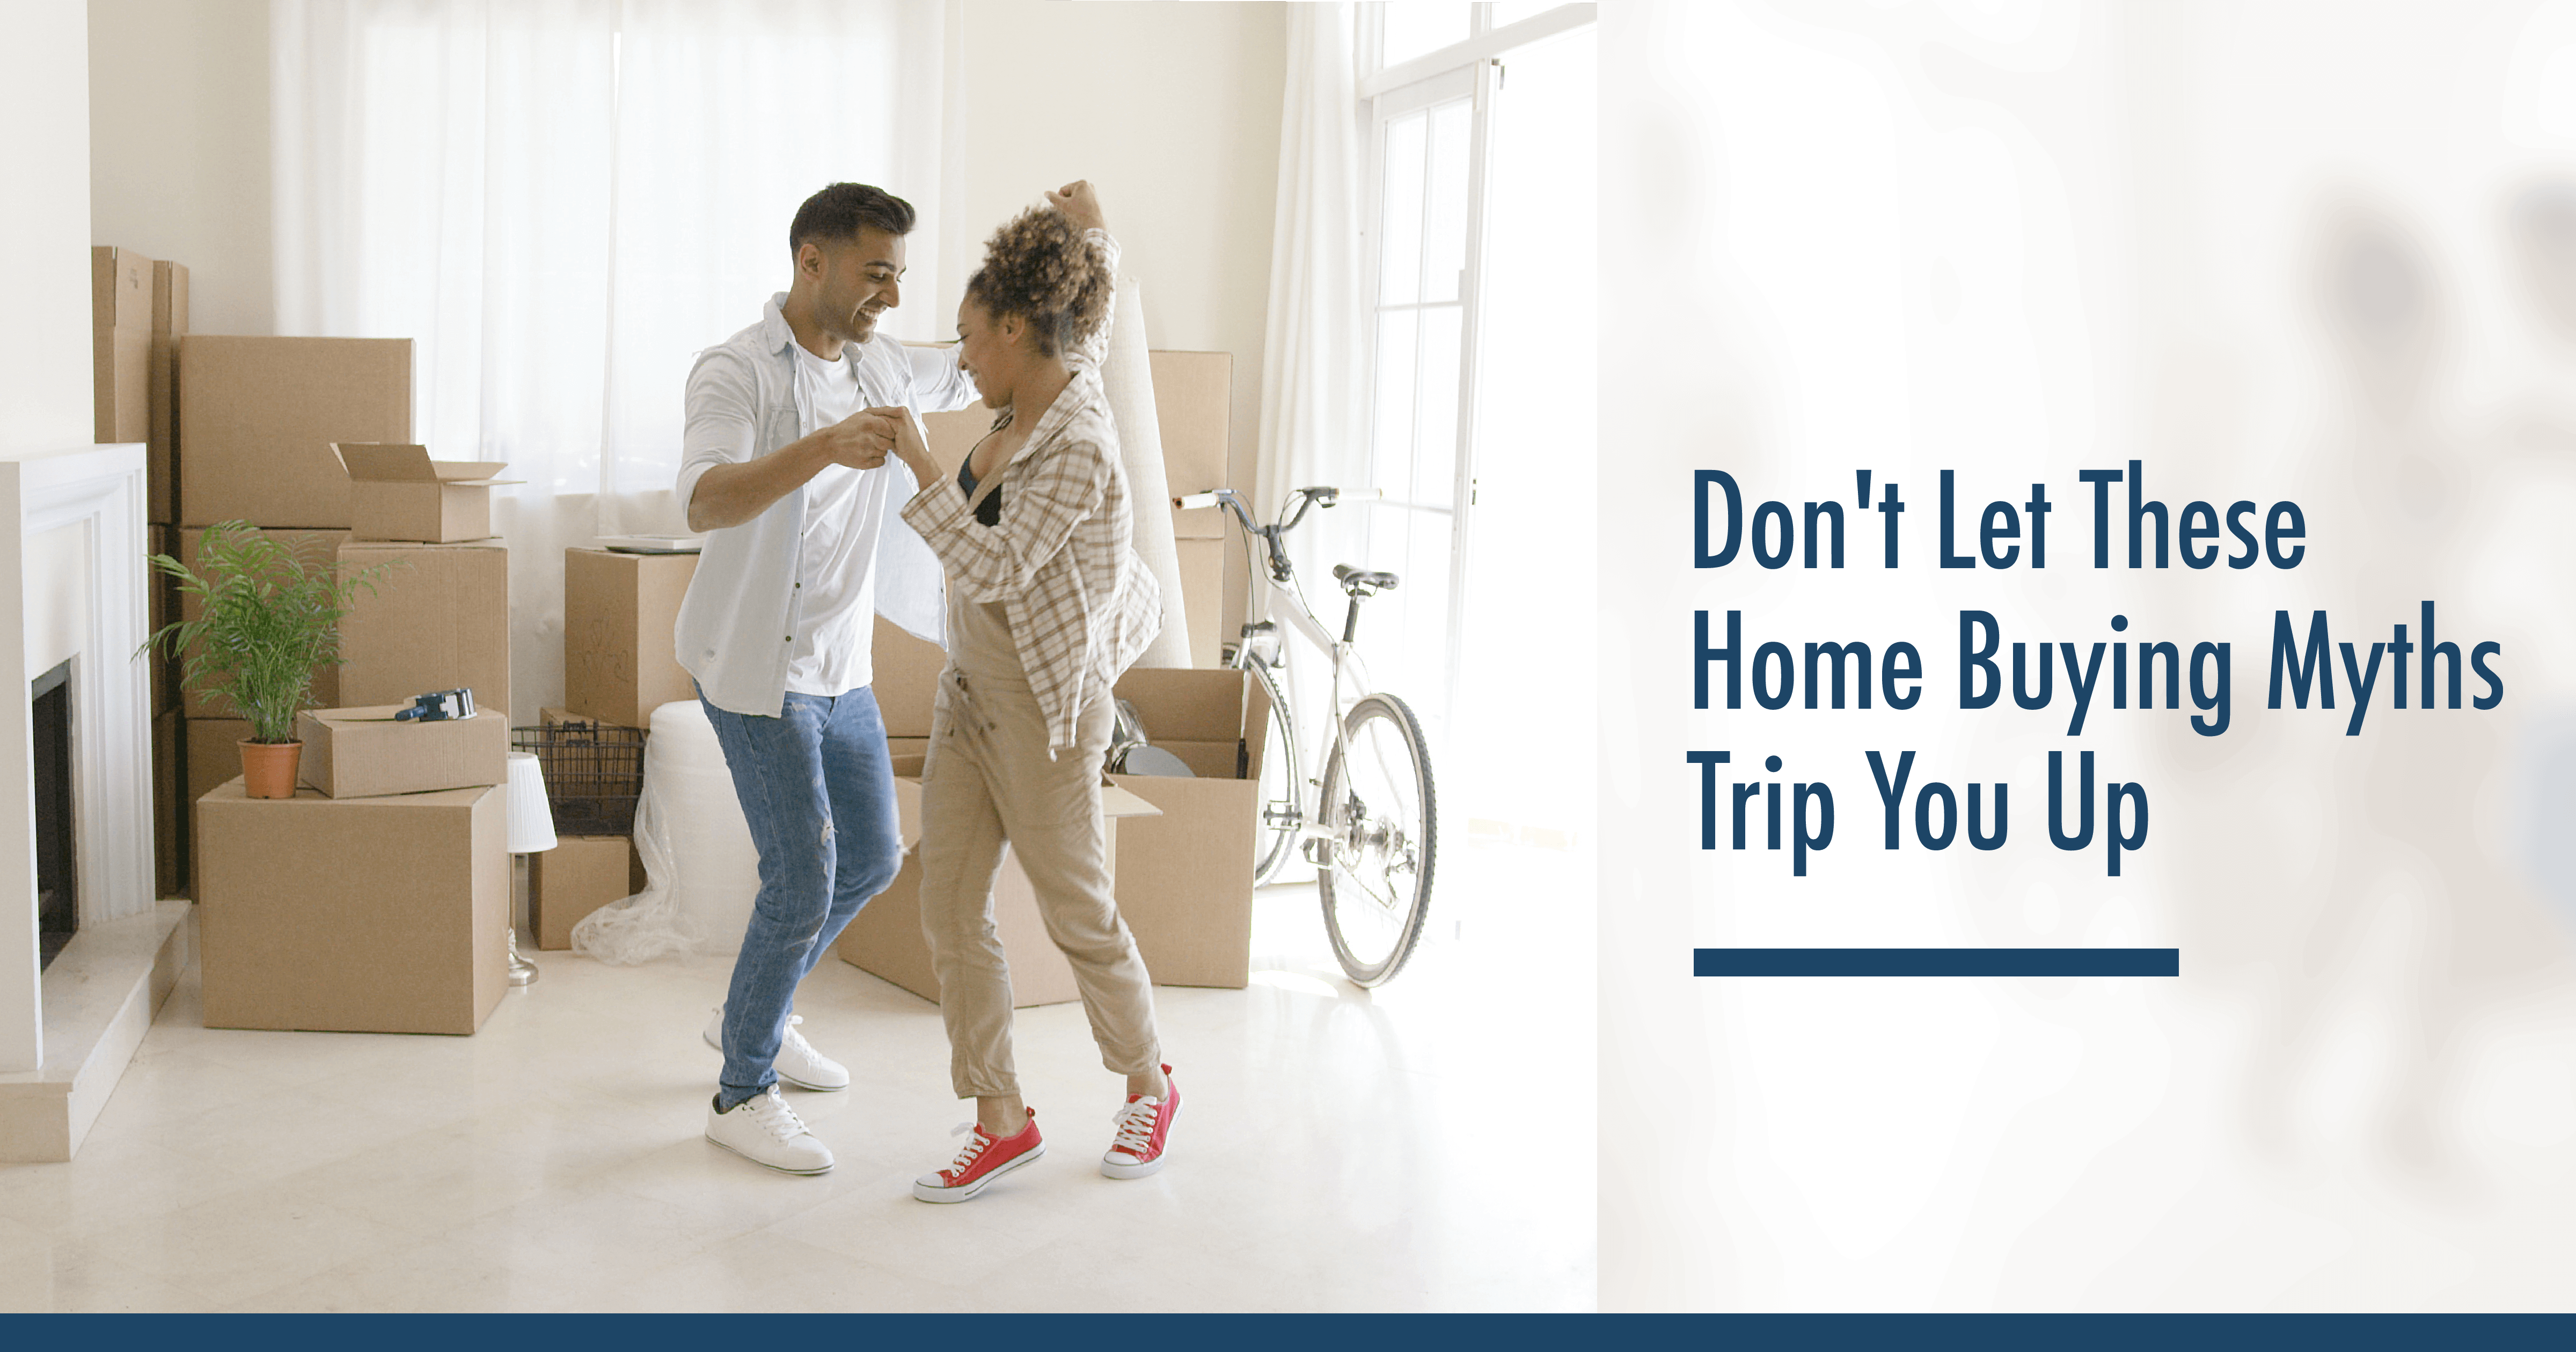 Don't Let These Home Buying Myths Trip You Up